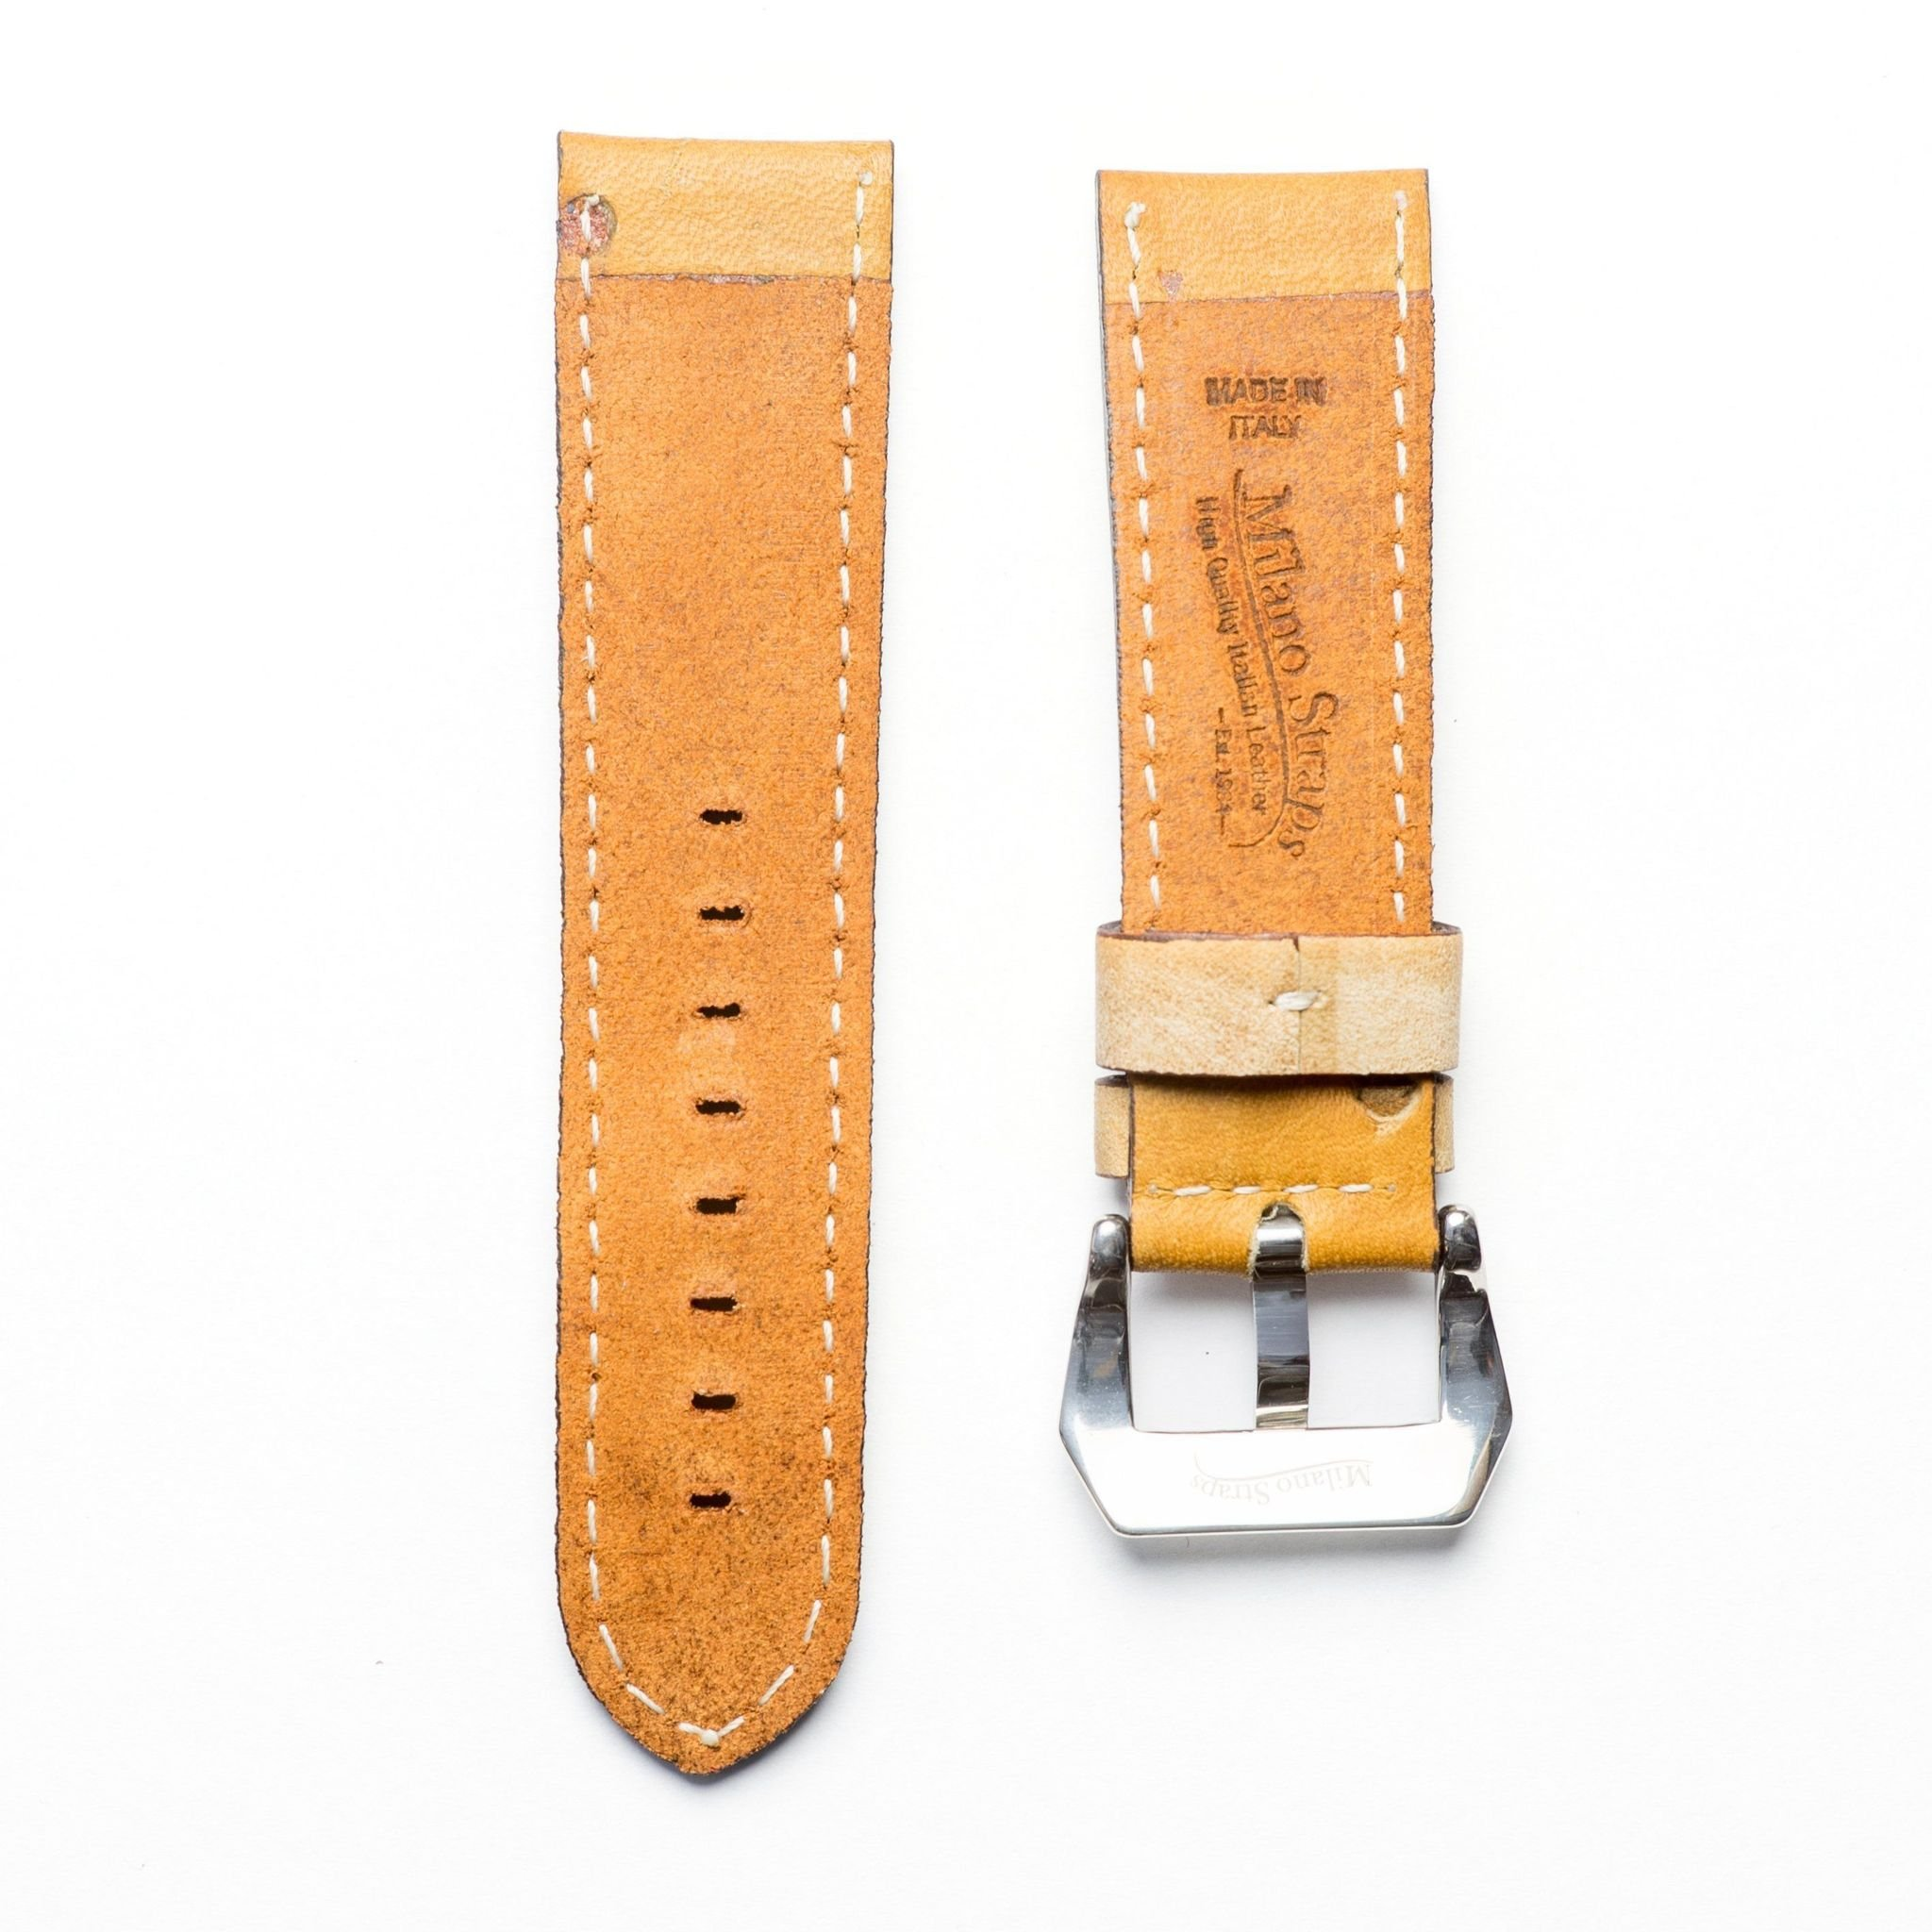 Baseball Leather Watch Strap - Limited Edition (24mm, Yellow Gold Polished) by Milano Straps (Image #3)